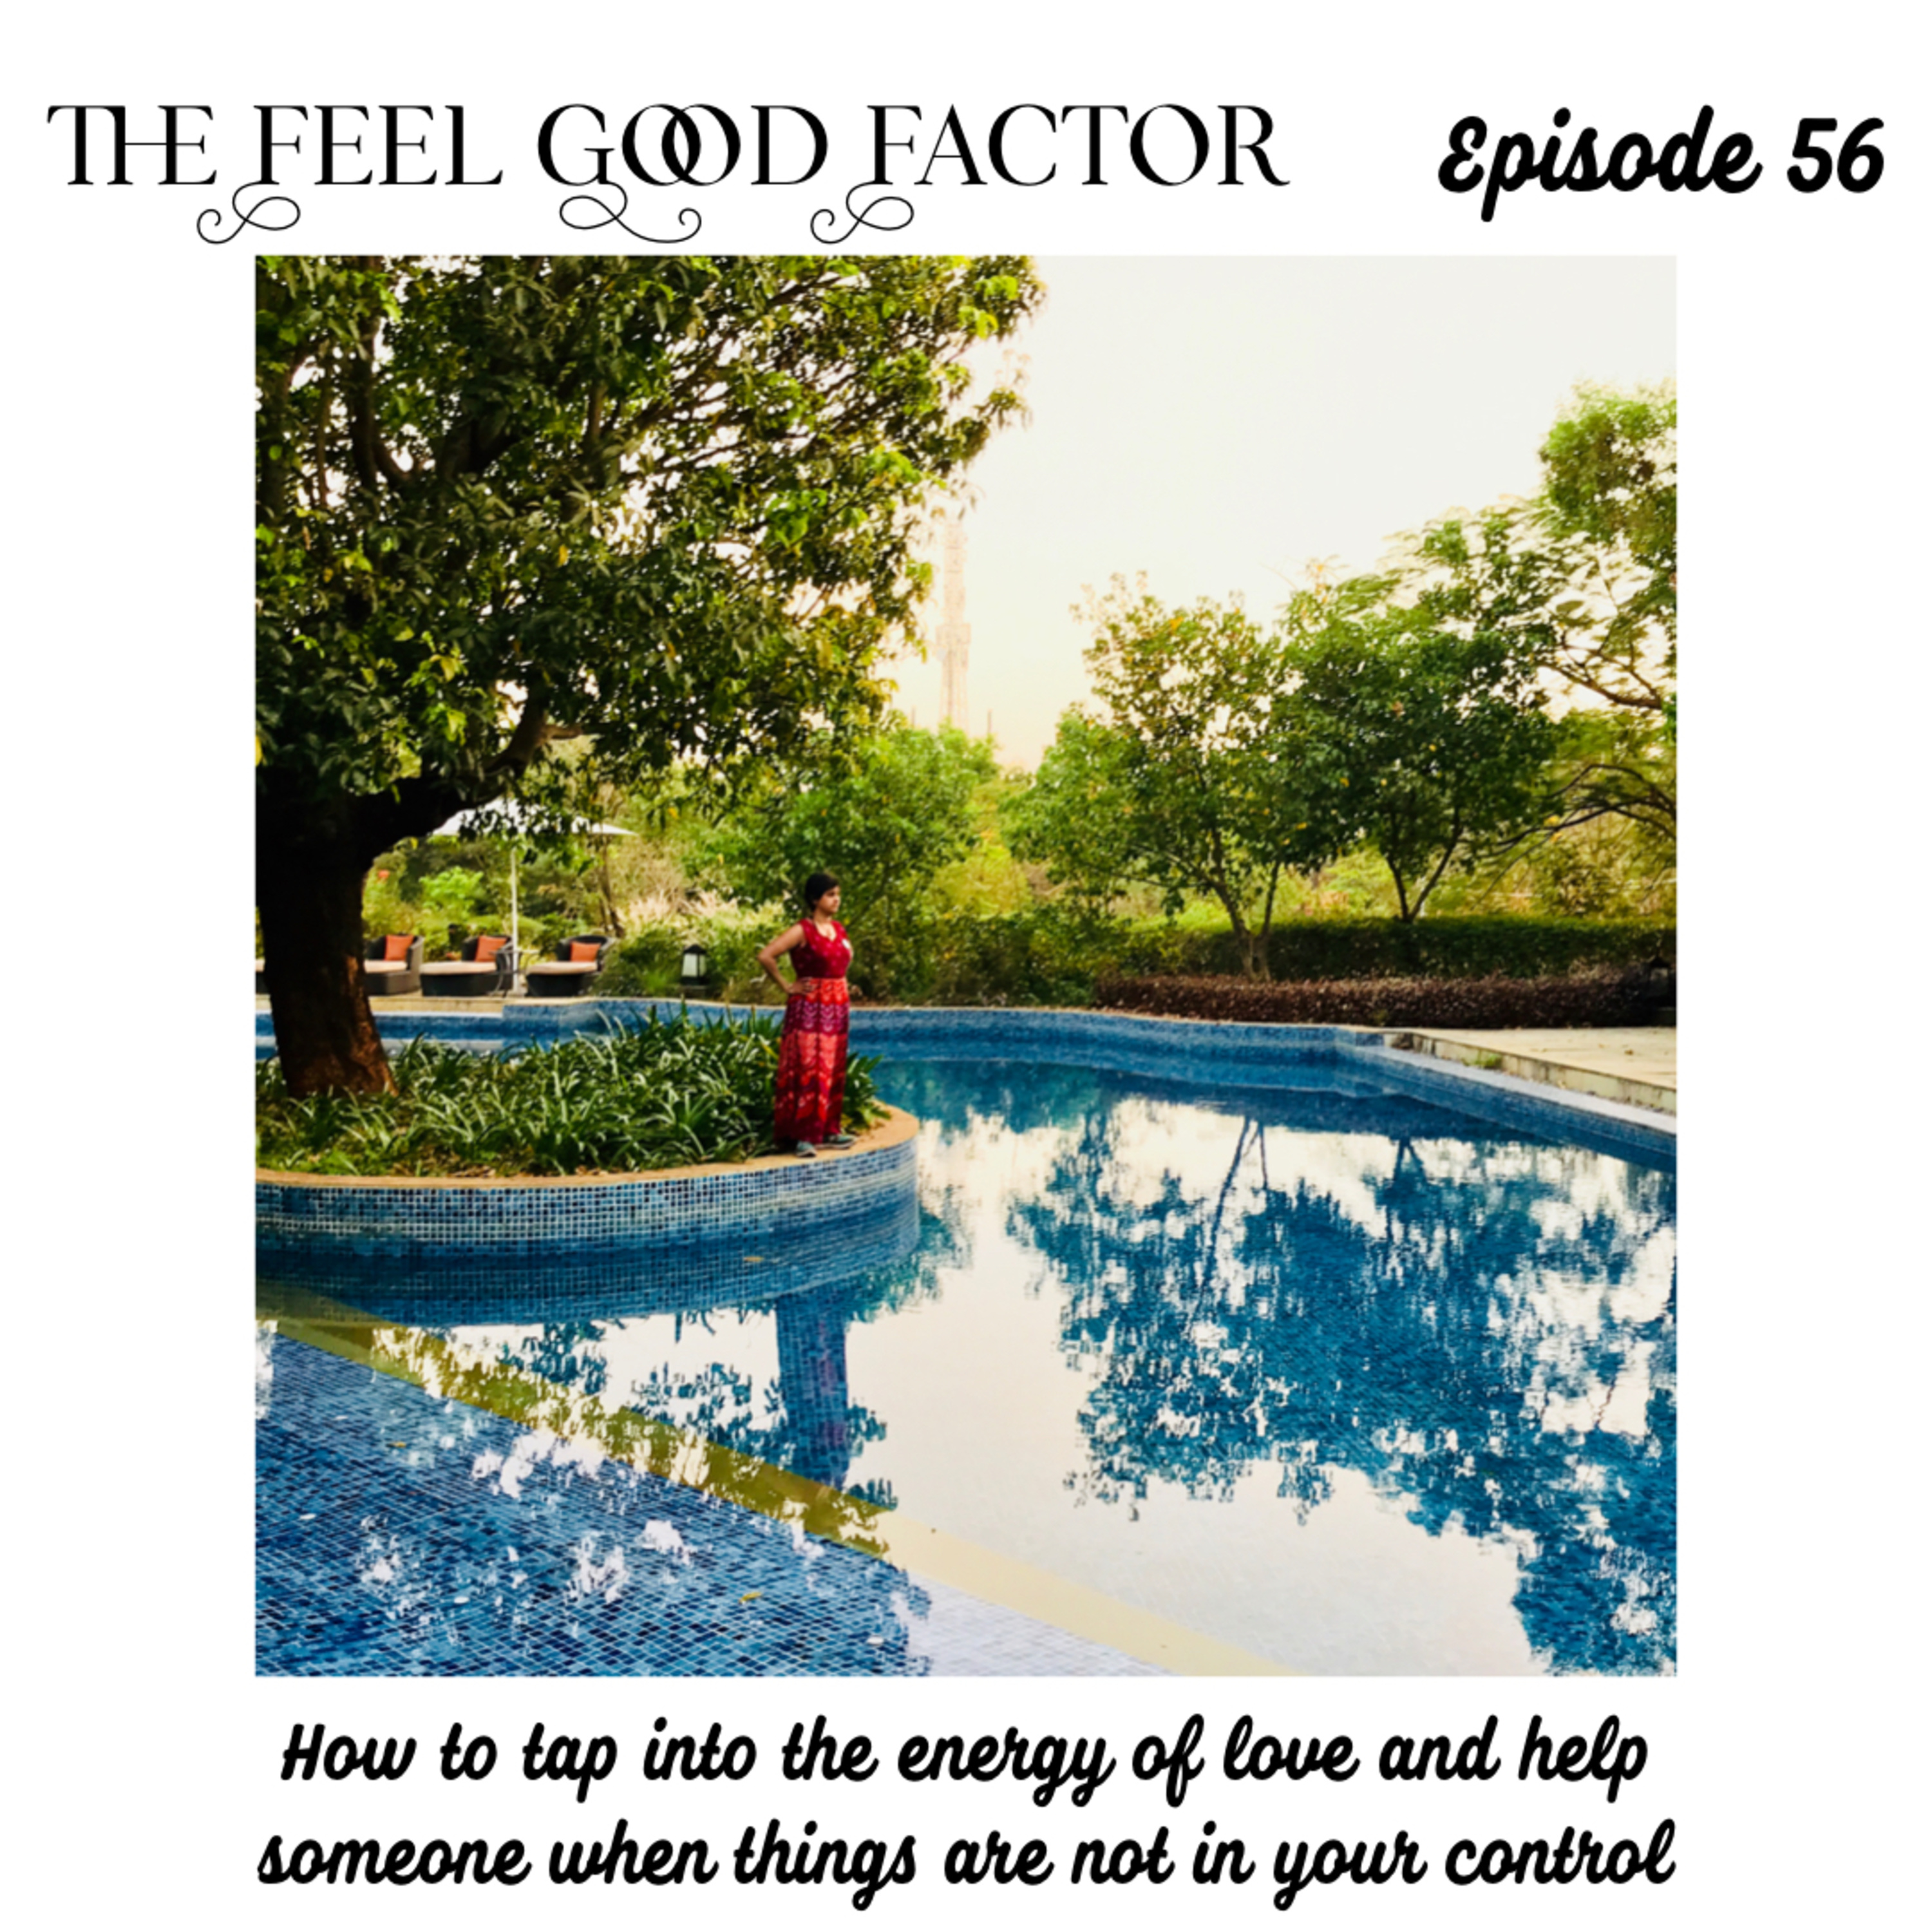 56: How to tap into the energy of love and help someone when things are not in your control